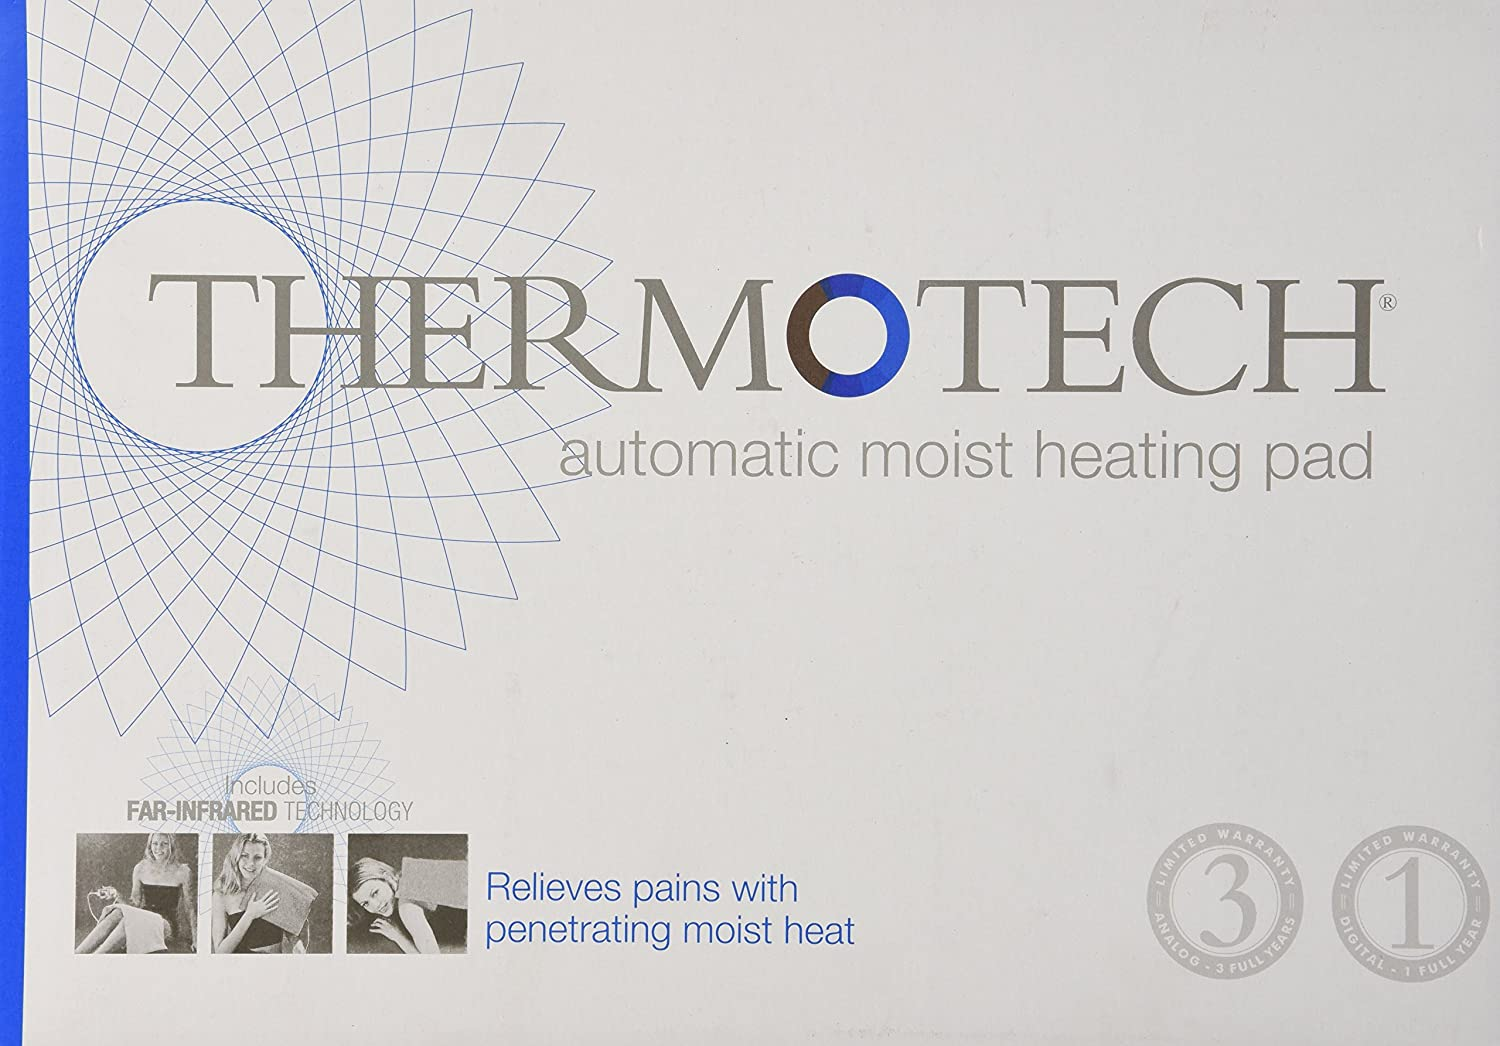 Thermotech Automatic Digital Moist Heating Pad Heating Pad, Neck and Shoulder, 18x18